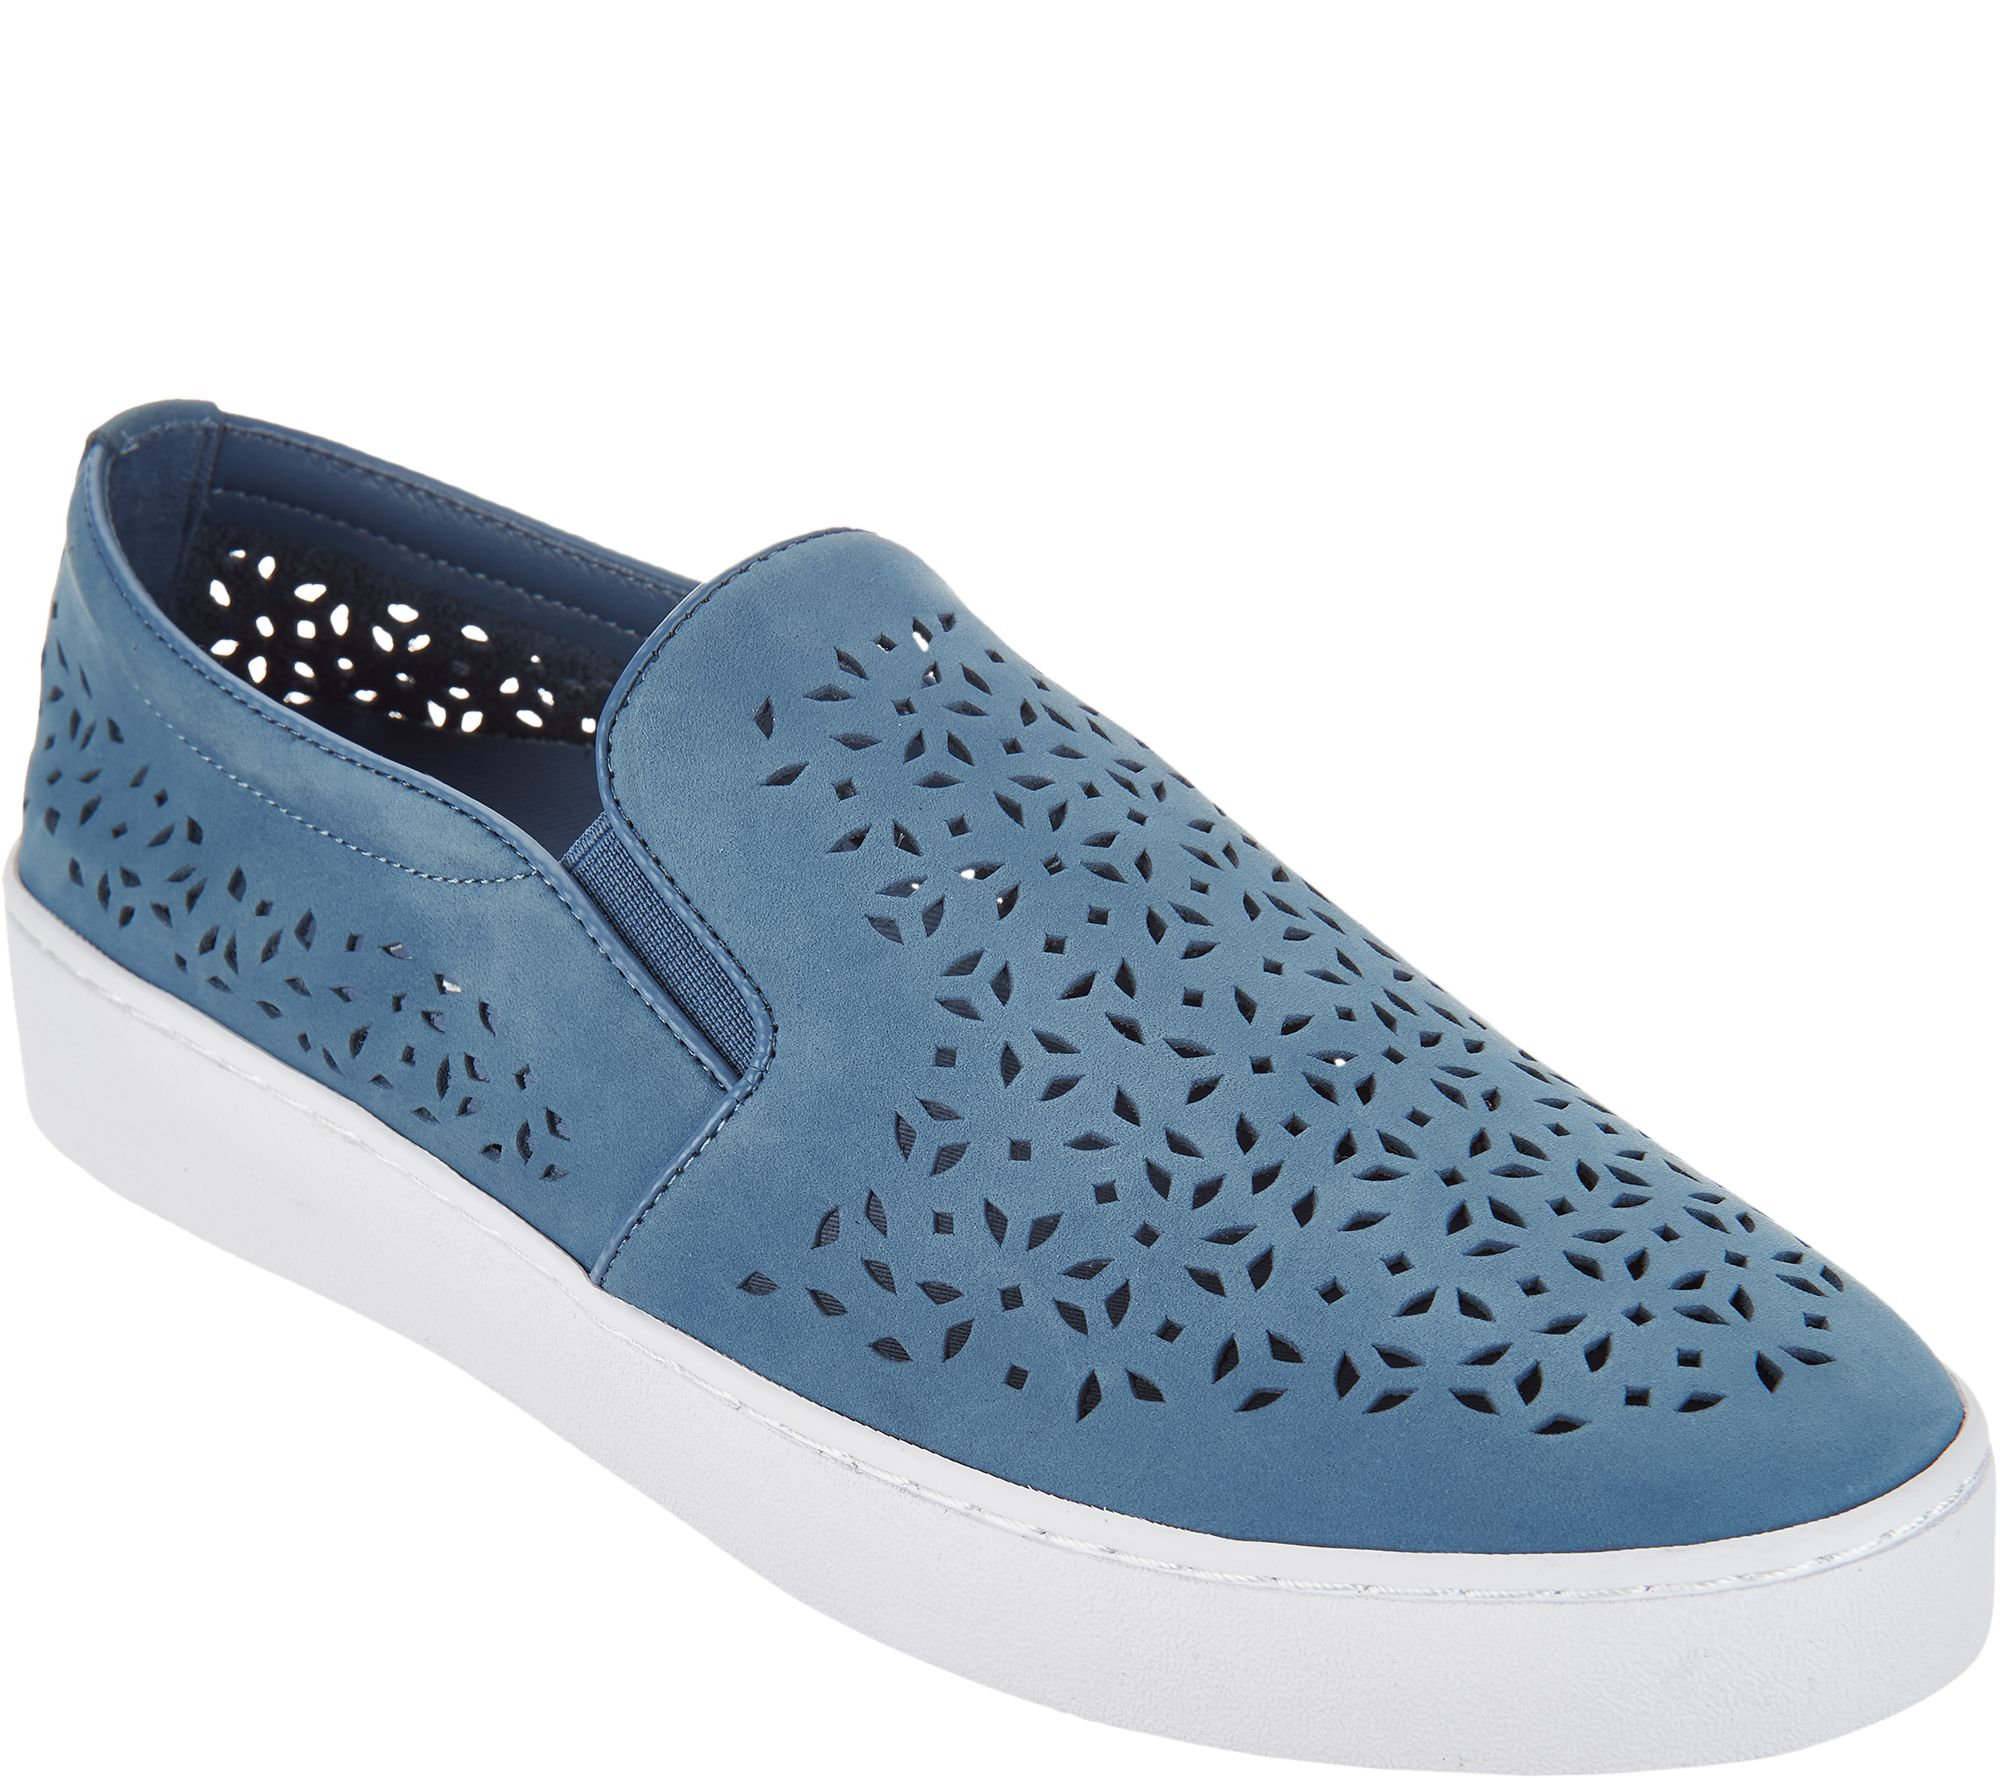 2dd380e7a09c6 Vionic Perforated Leather Slip-On - Midi Perf - Page 1 — QVC.com